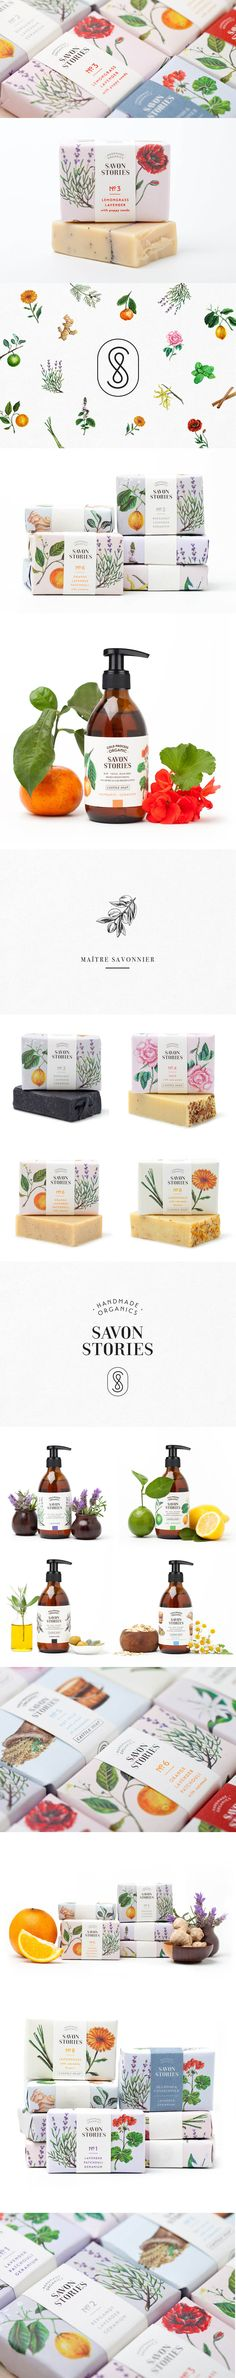 Savon Stories Packaging Design